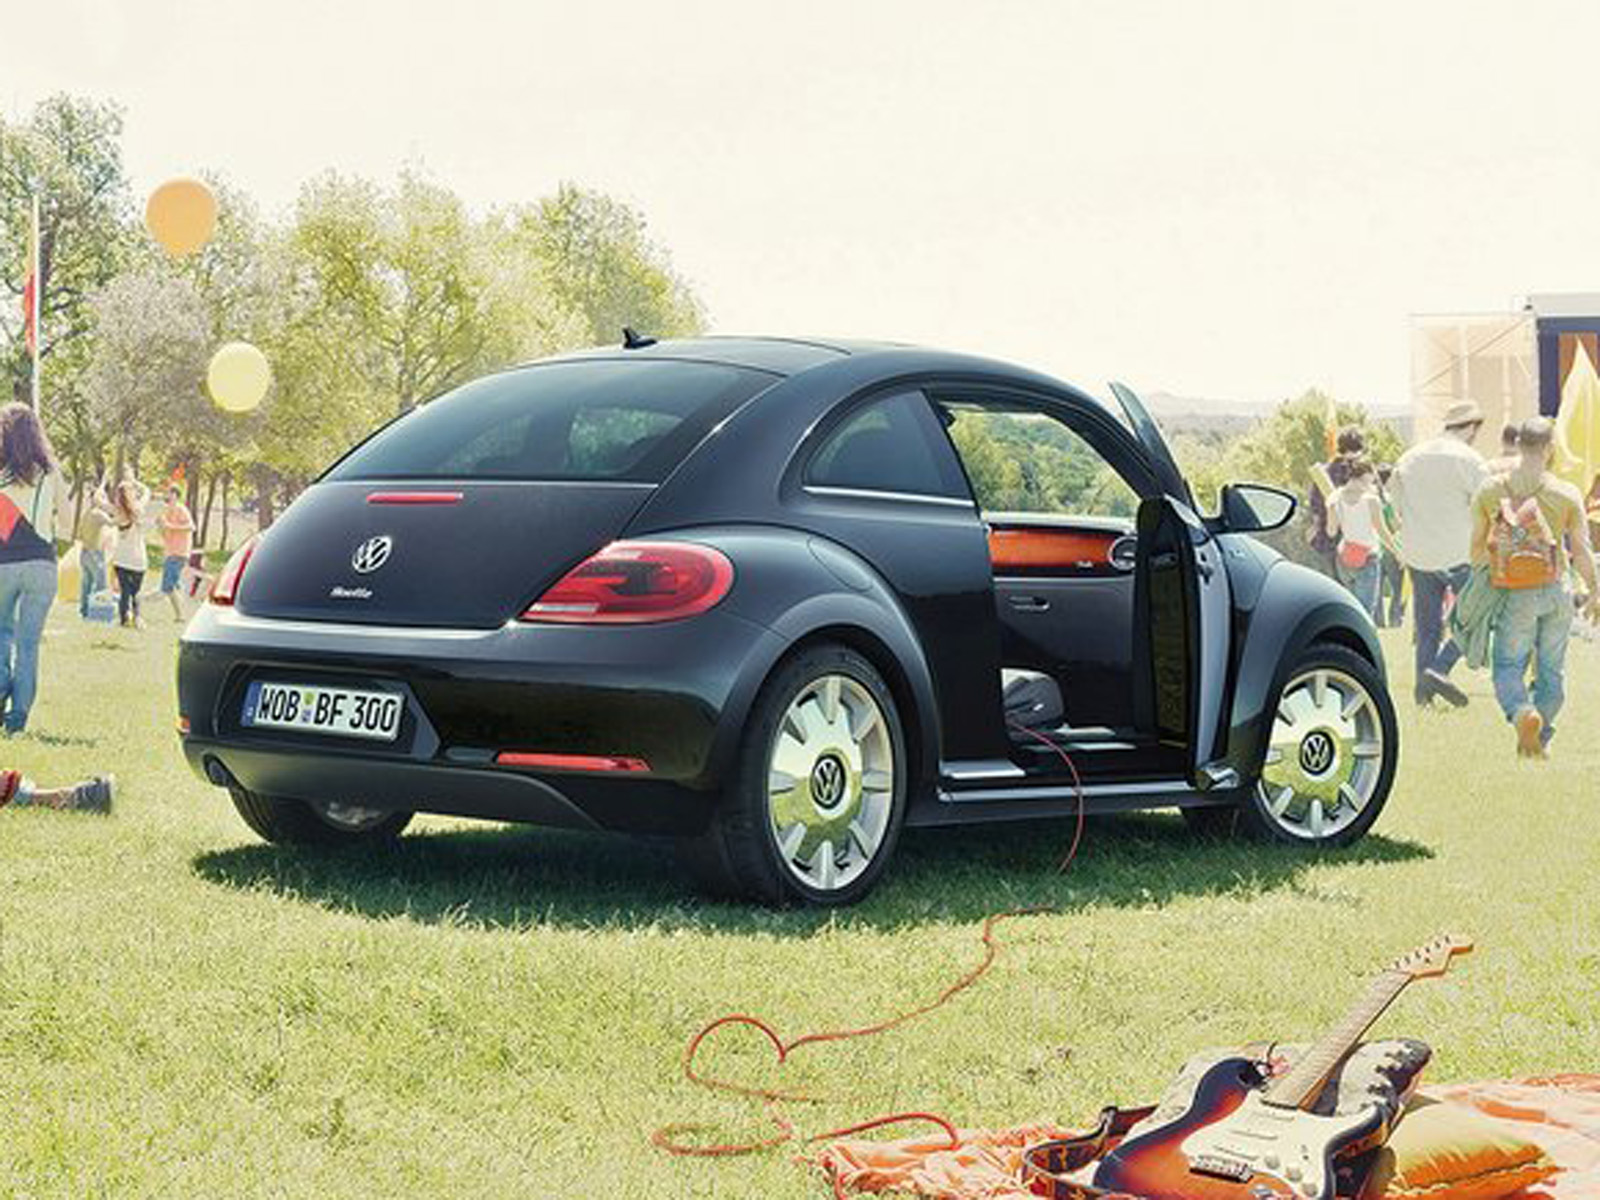 2019 Volkswagen Beetle Fender Edition photo - 6